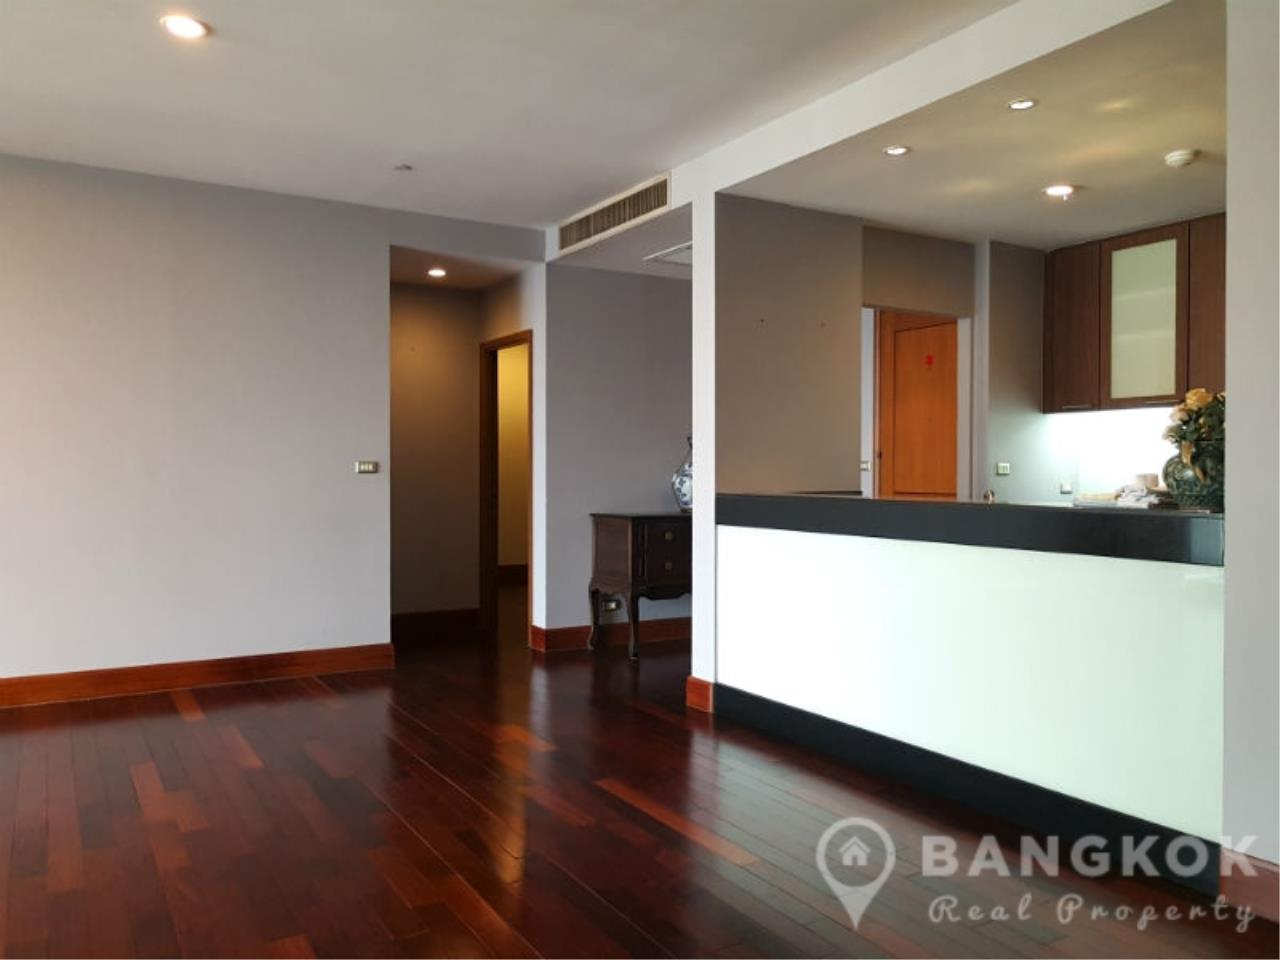 Bangkok Real Property Agency's Sky Villas (Ascott) Sathorn | Spacious High Floor 2 +1 Bed 2 Bath 6